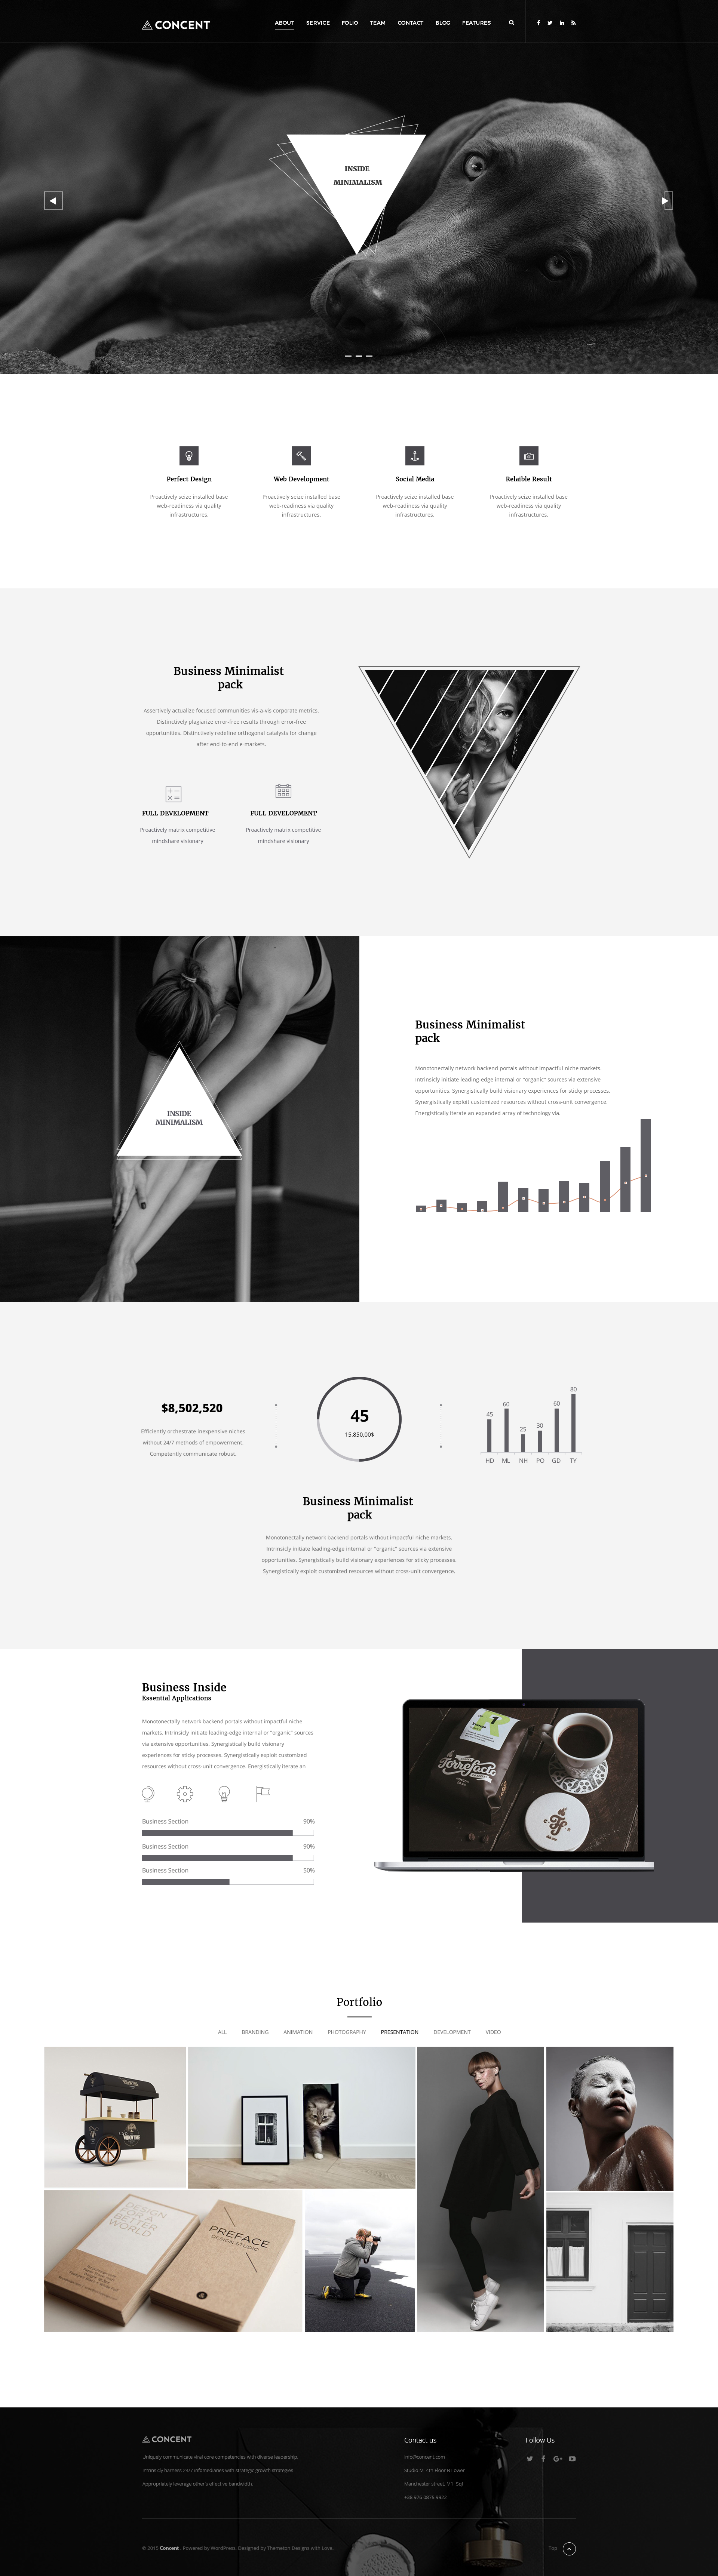 Concent - MultiPurose Business Art Photography PSD Template by themeton